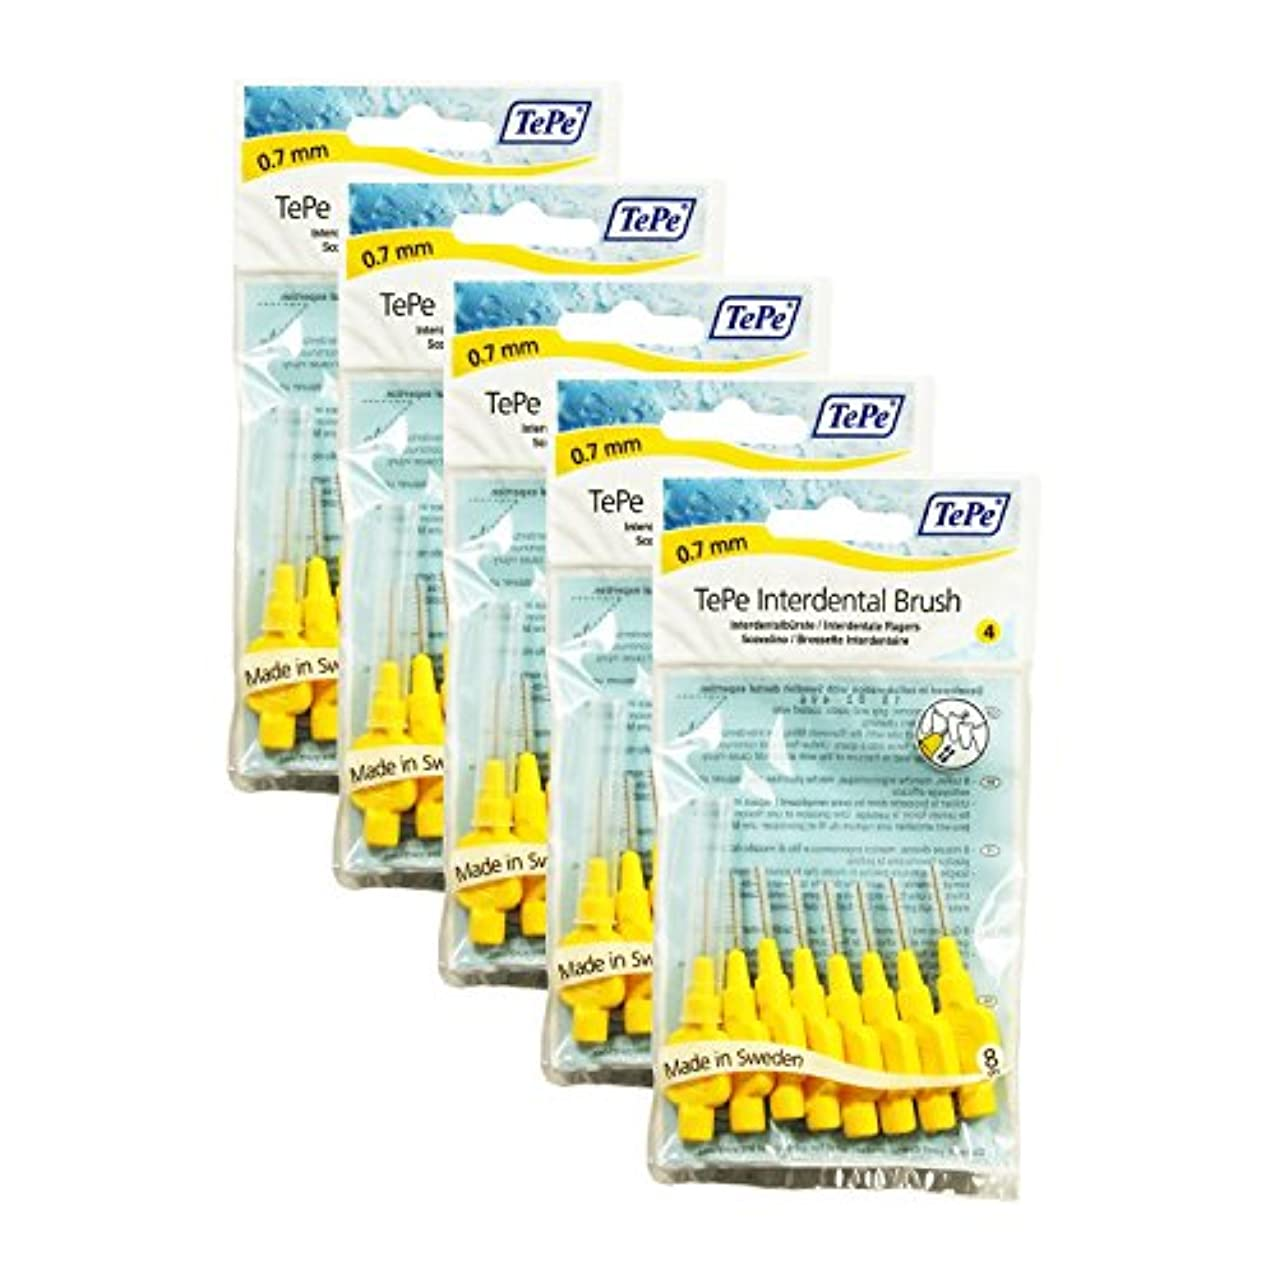 シティチャンピオンシップ調和TePe Interdental Brushes YELLOW 0.70 mm - 40 Brushes (5 Packs of 8) by TePe [並行輸入品]